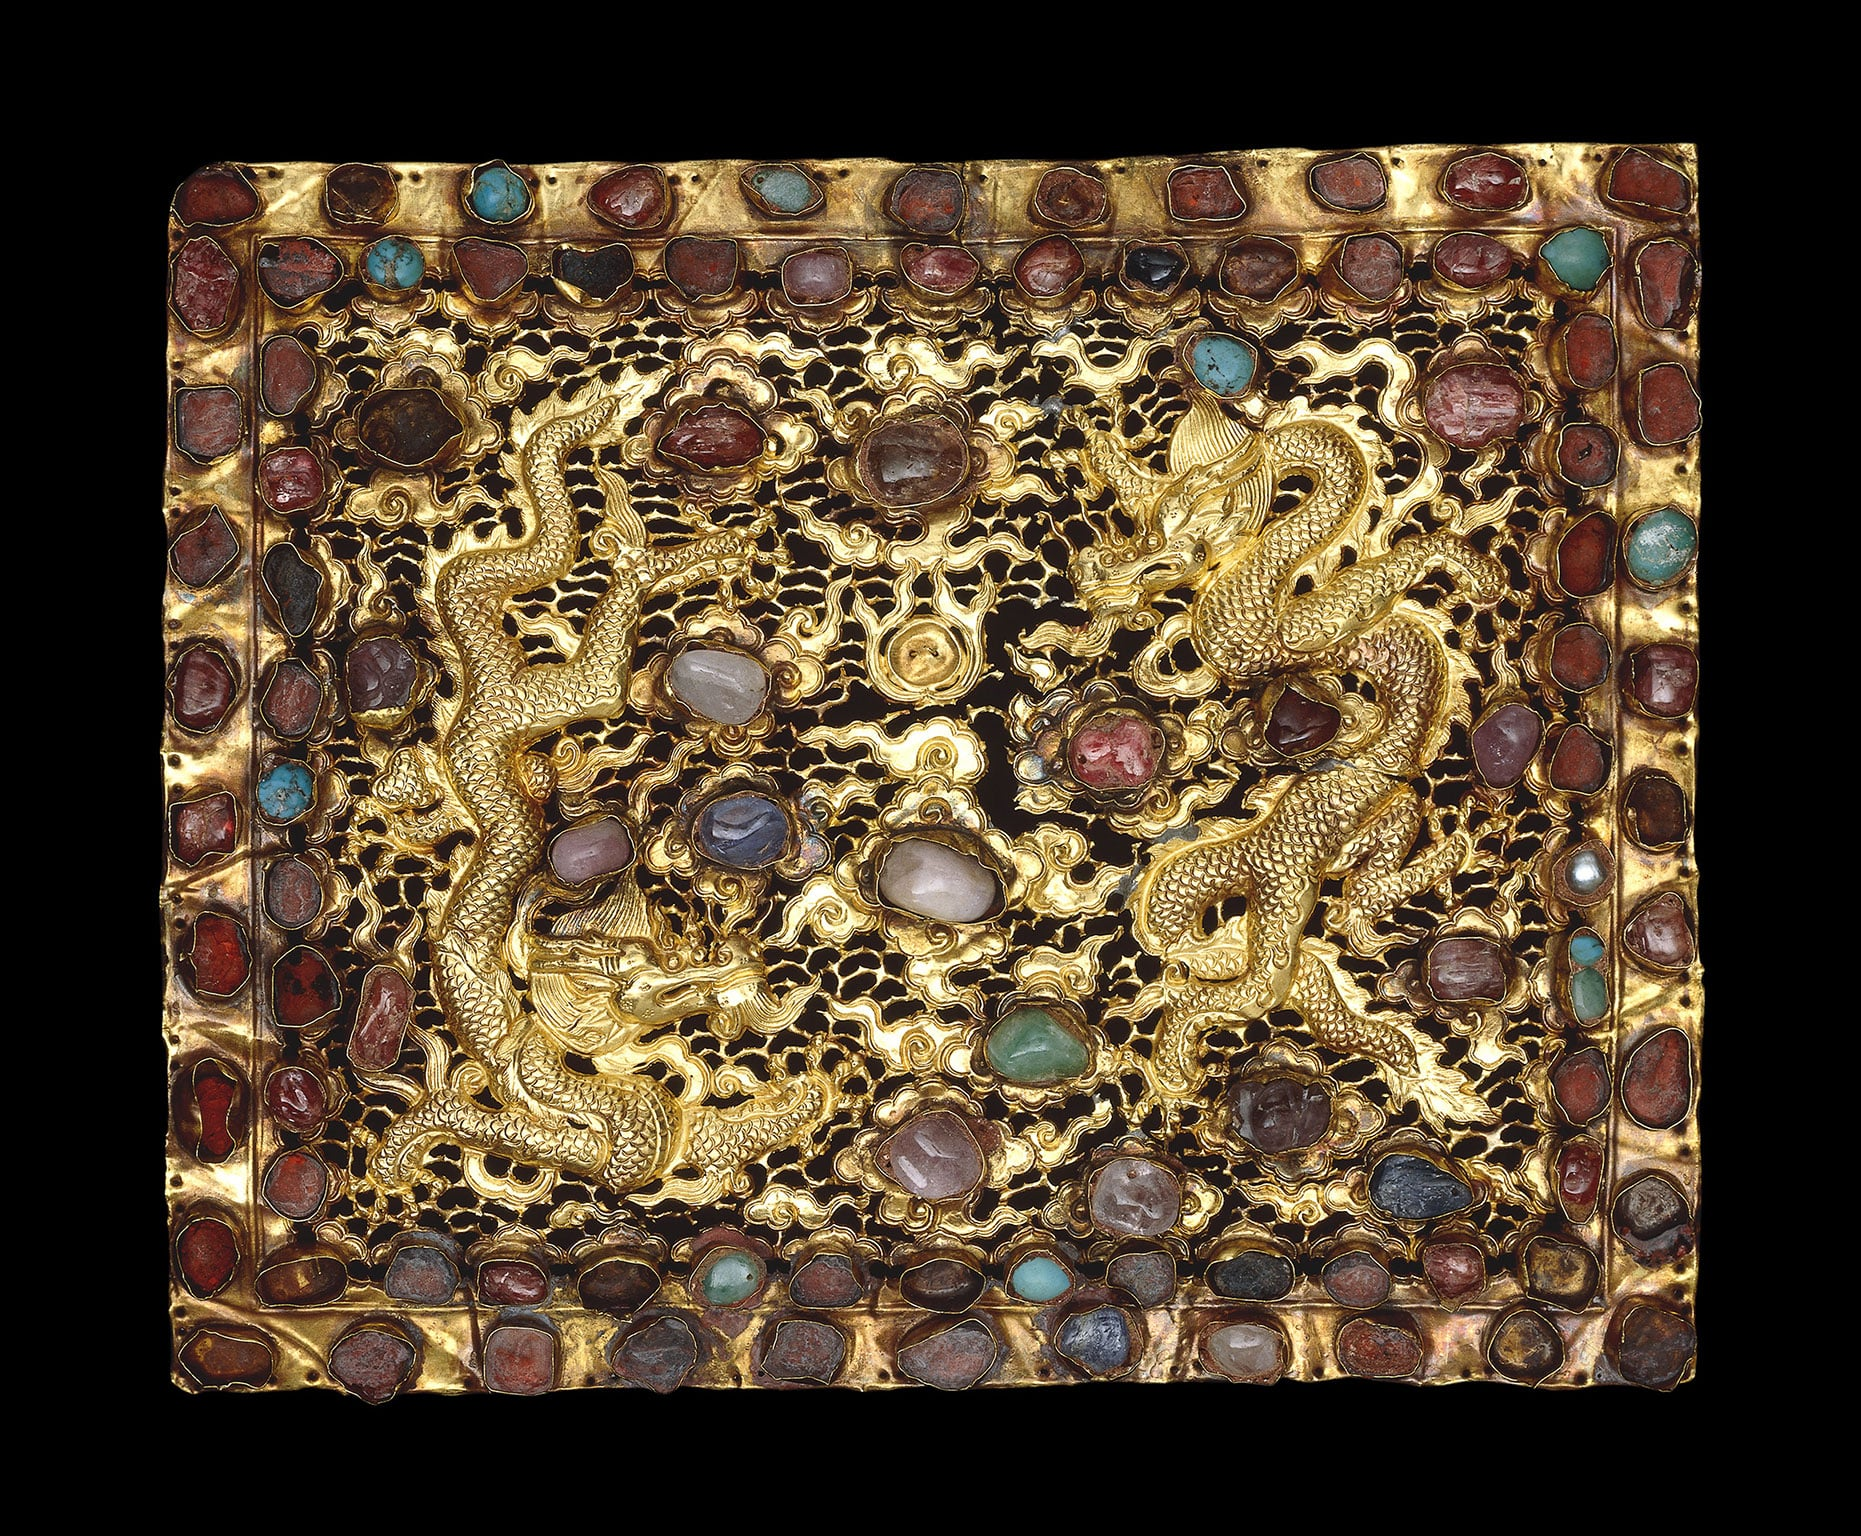 A pair of gold pillow ends, decorated with two dragons and worked in relief with chased detail and openwork. Gold, rubies, turquoise and other precious and semi-precious stones, Beijing or Nanjing, Xuande era, 1426-1435